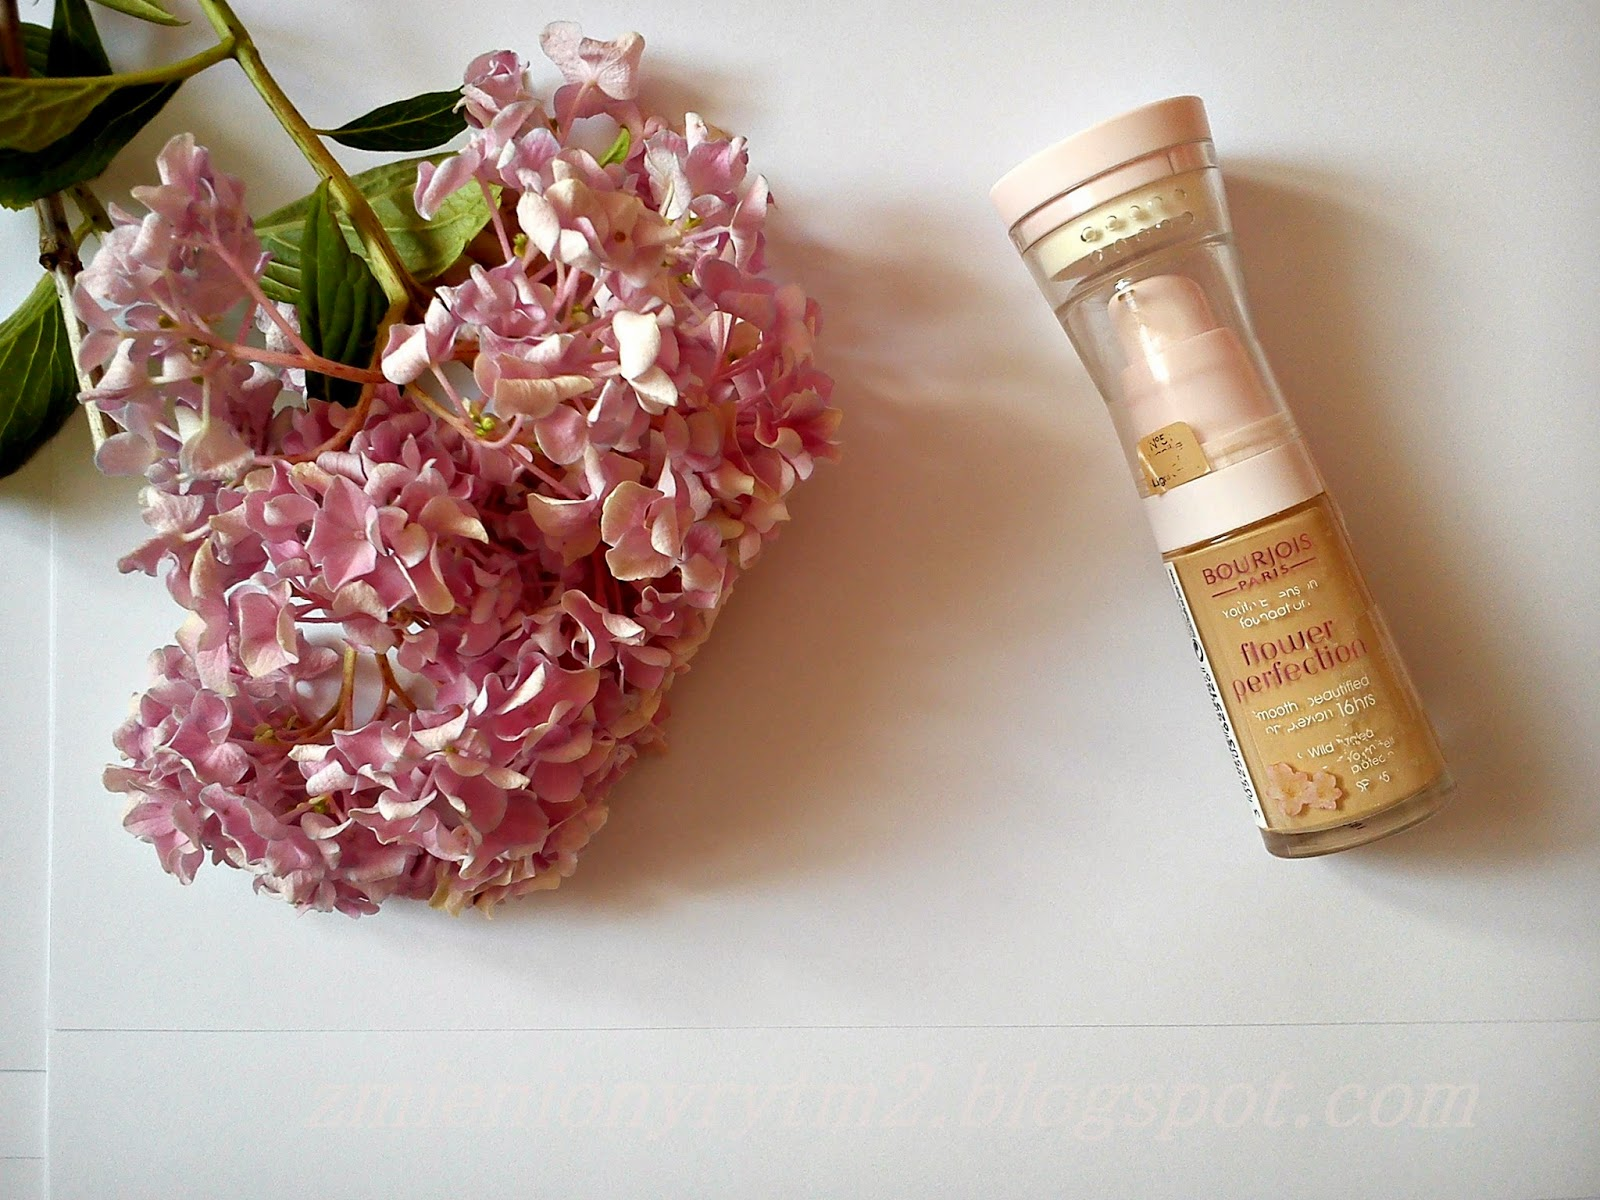 Bourjois Flower Perfection